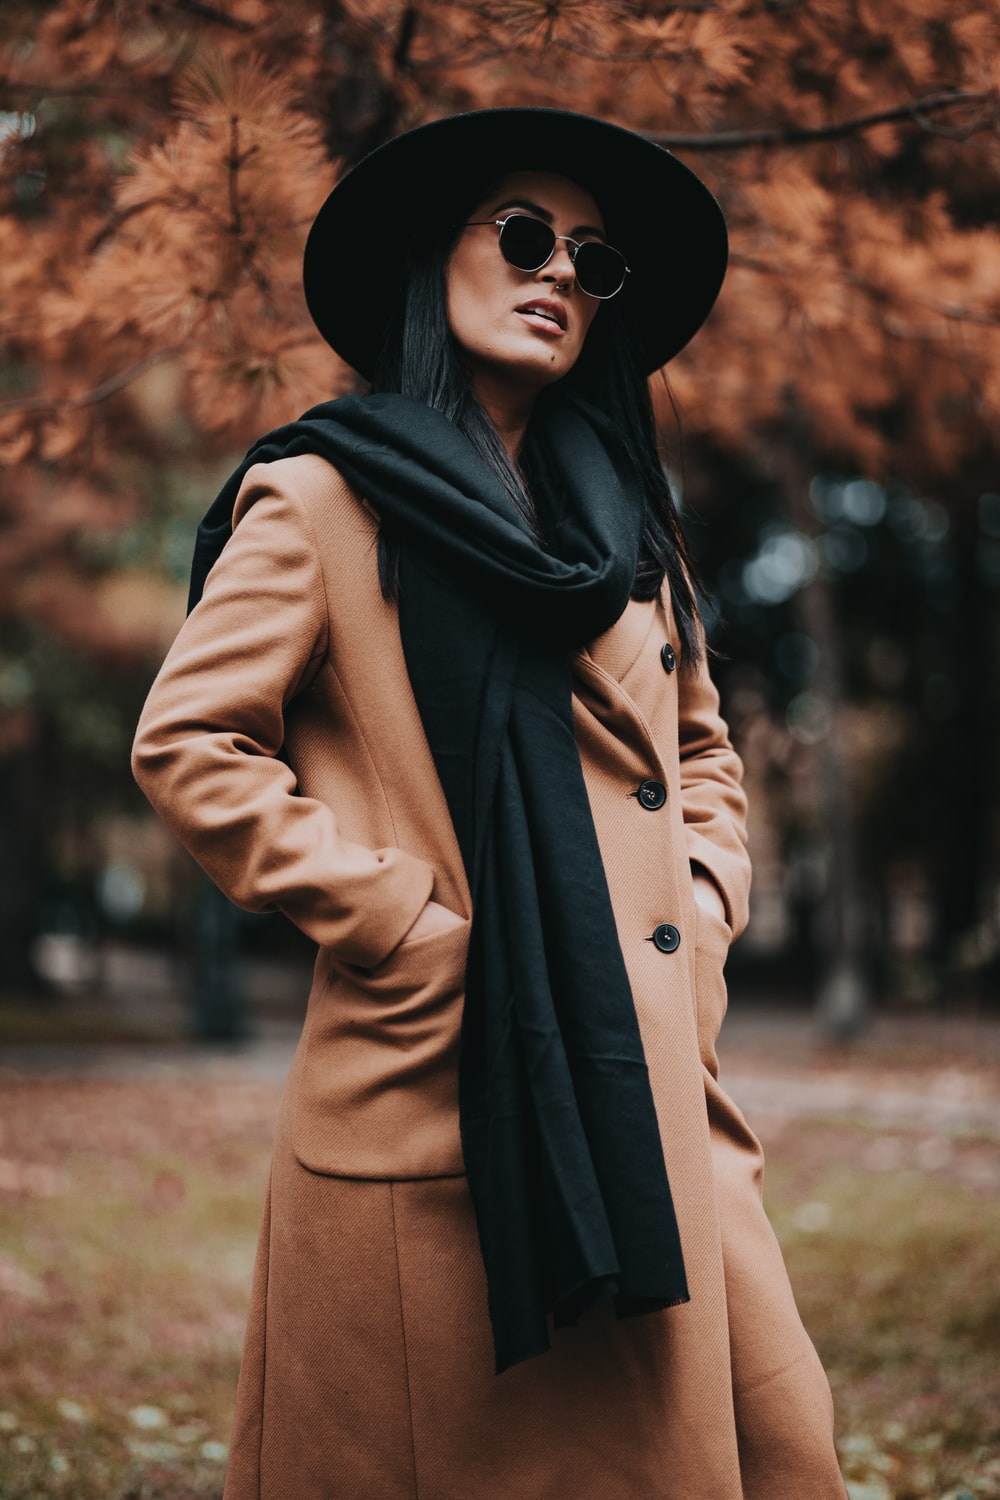 woman in brown coat and black hat standing near brown trees during daytime